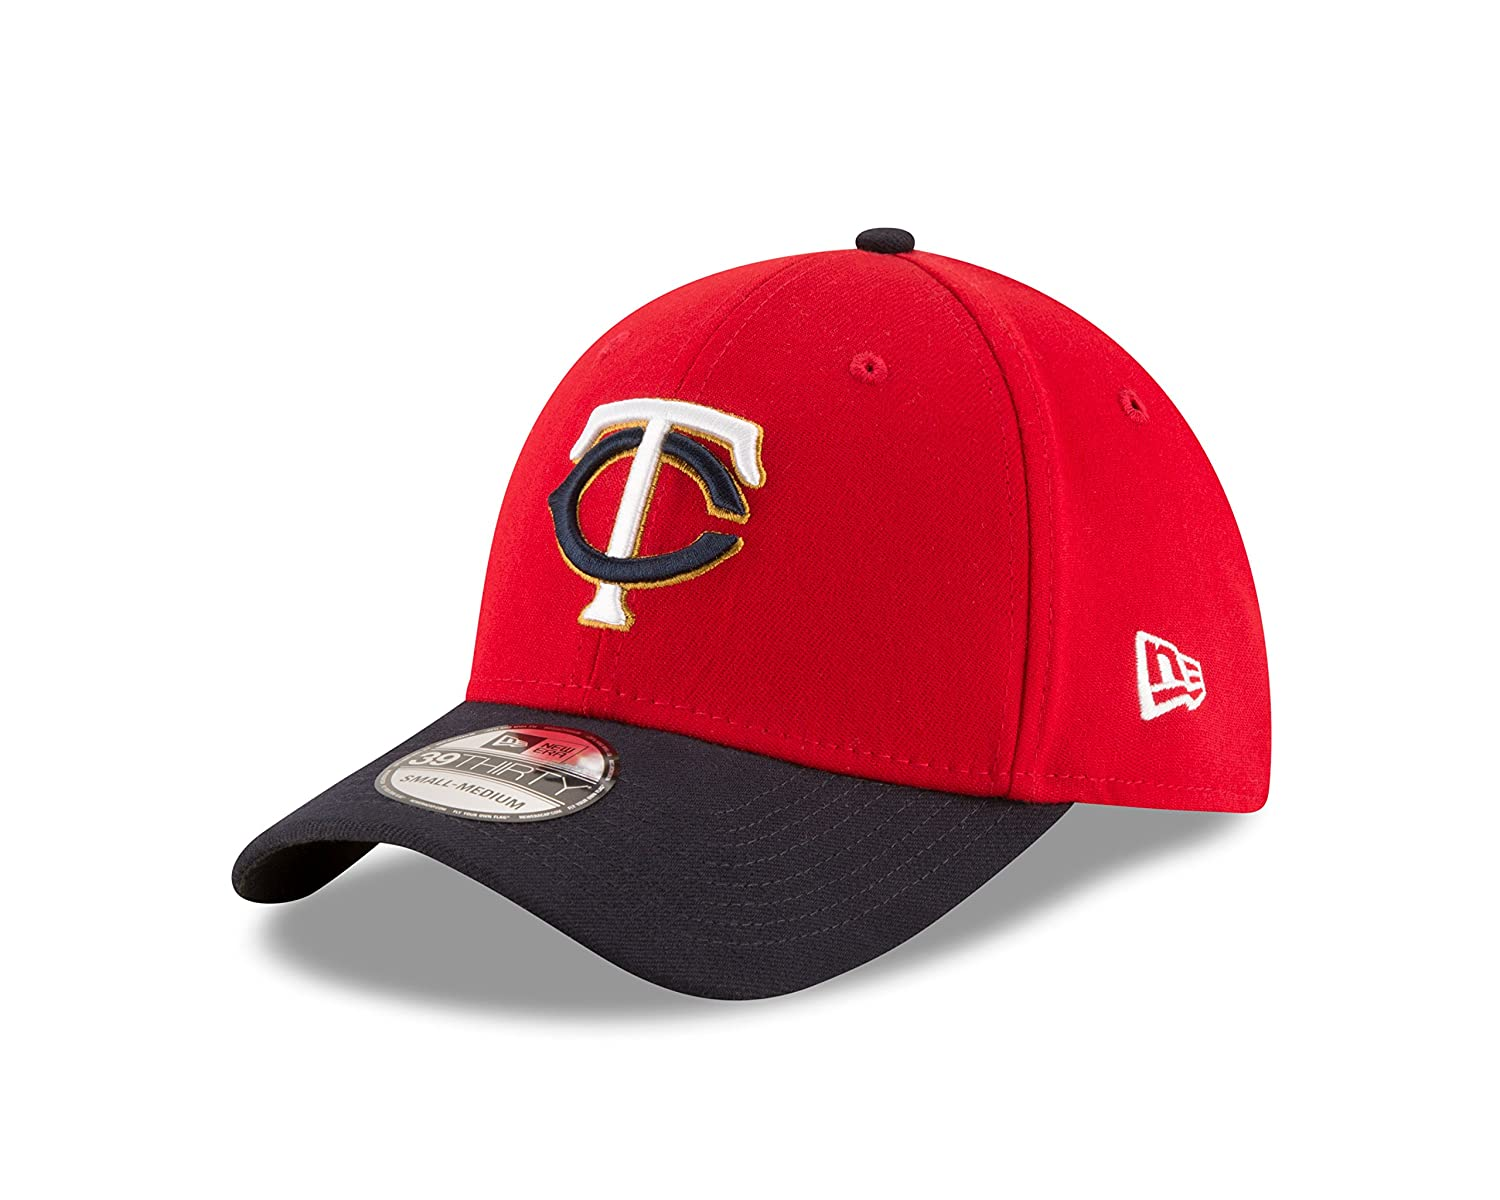 detailed look 69be4 aab05 New Era MLB Minnesota Twins Alt 2 Team Classic 39Thirty Stretch Fit Cap,  Small Medium, Red  Amazon.co.uk  Sports   Outdoors